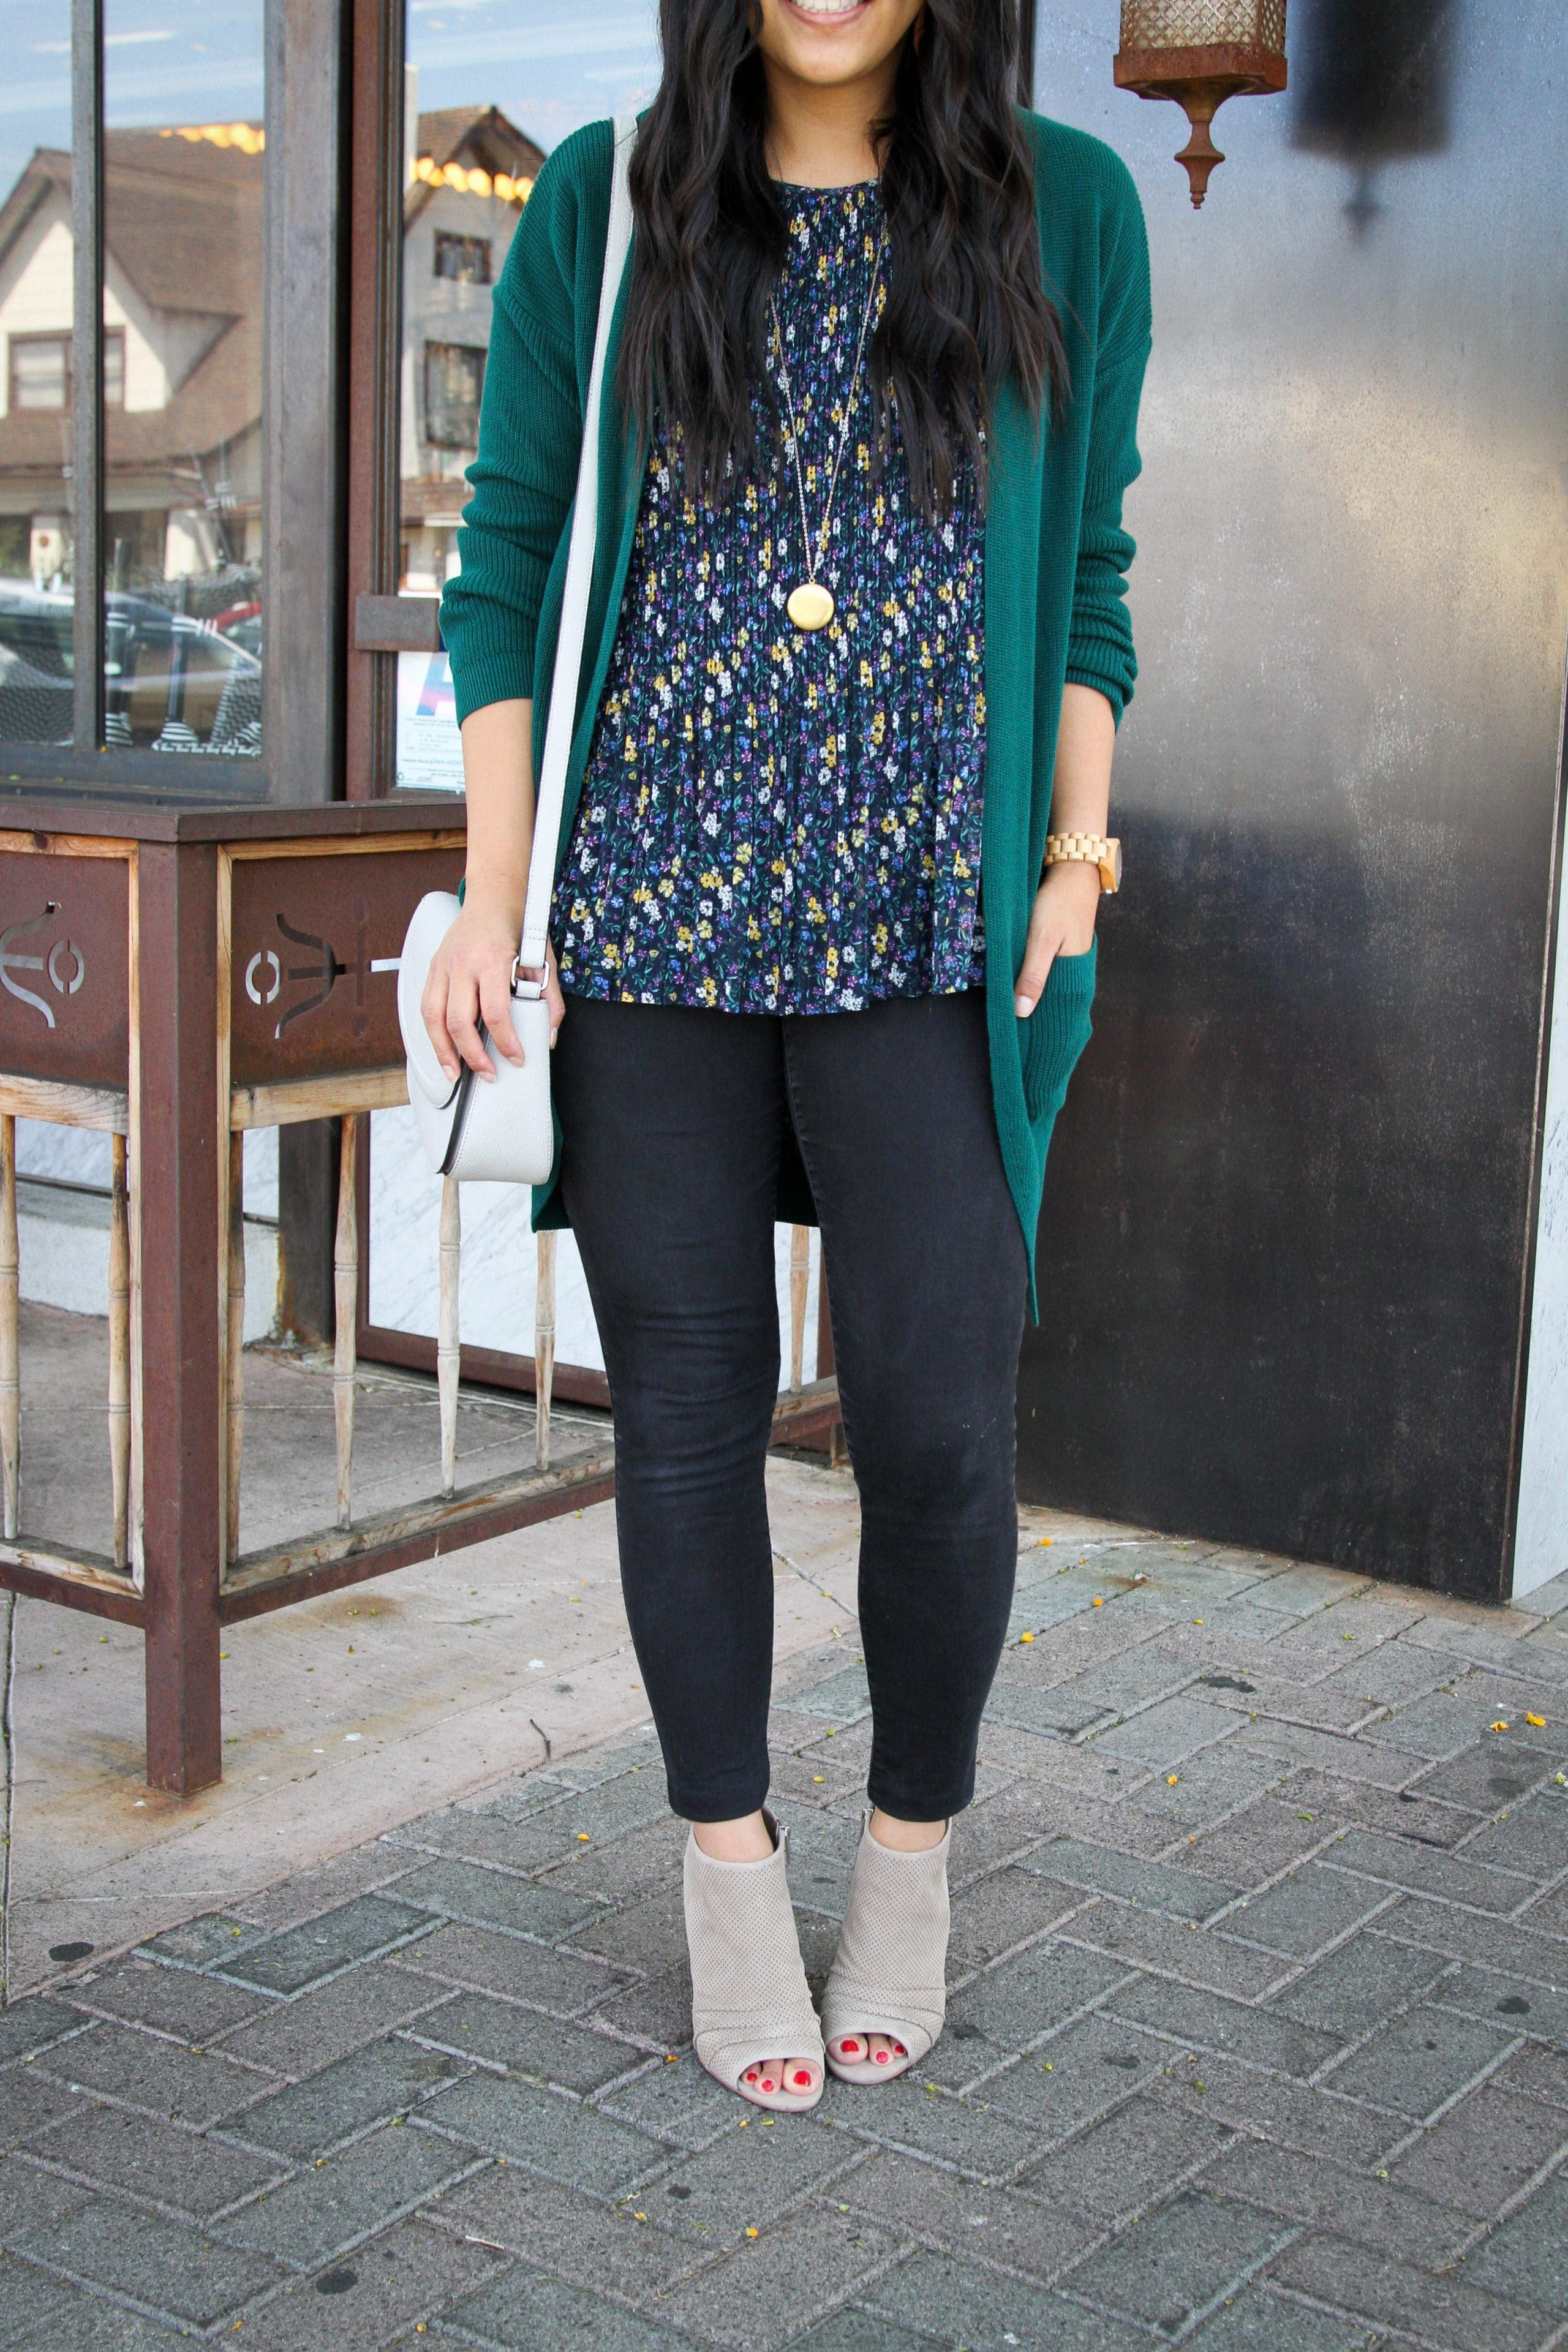 Taupe Peep Toe Booties + Black Jeans + Floral Top + Green Cardigan